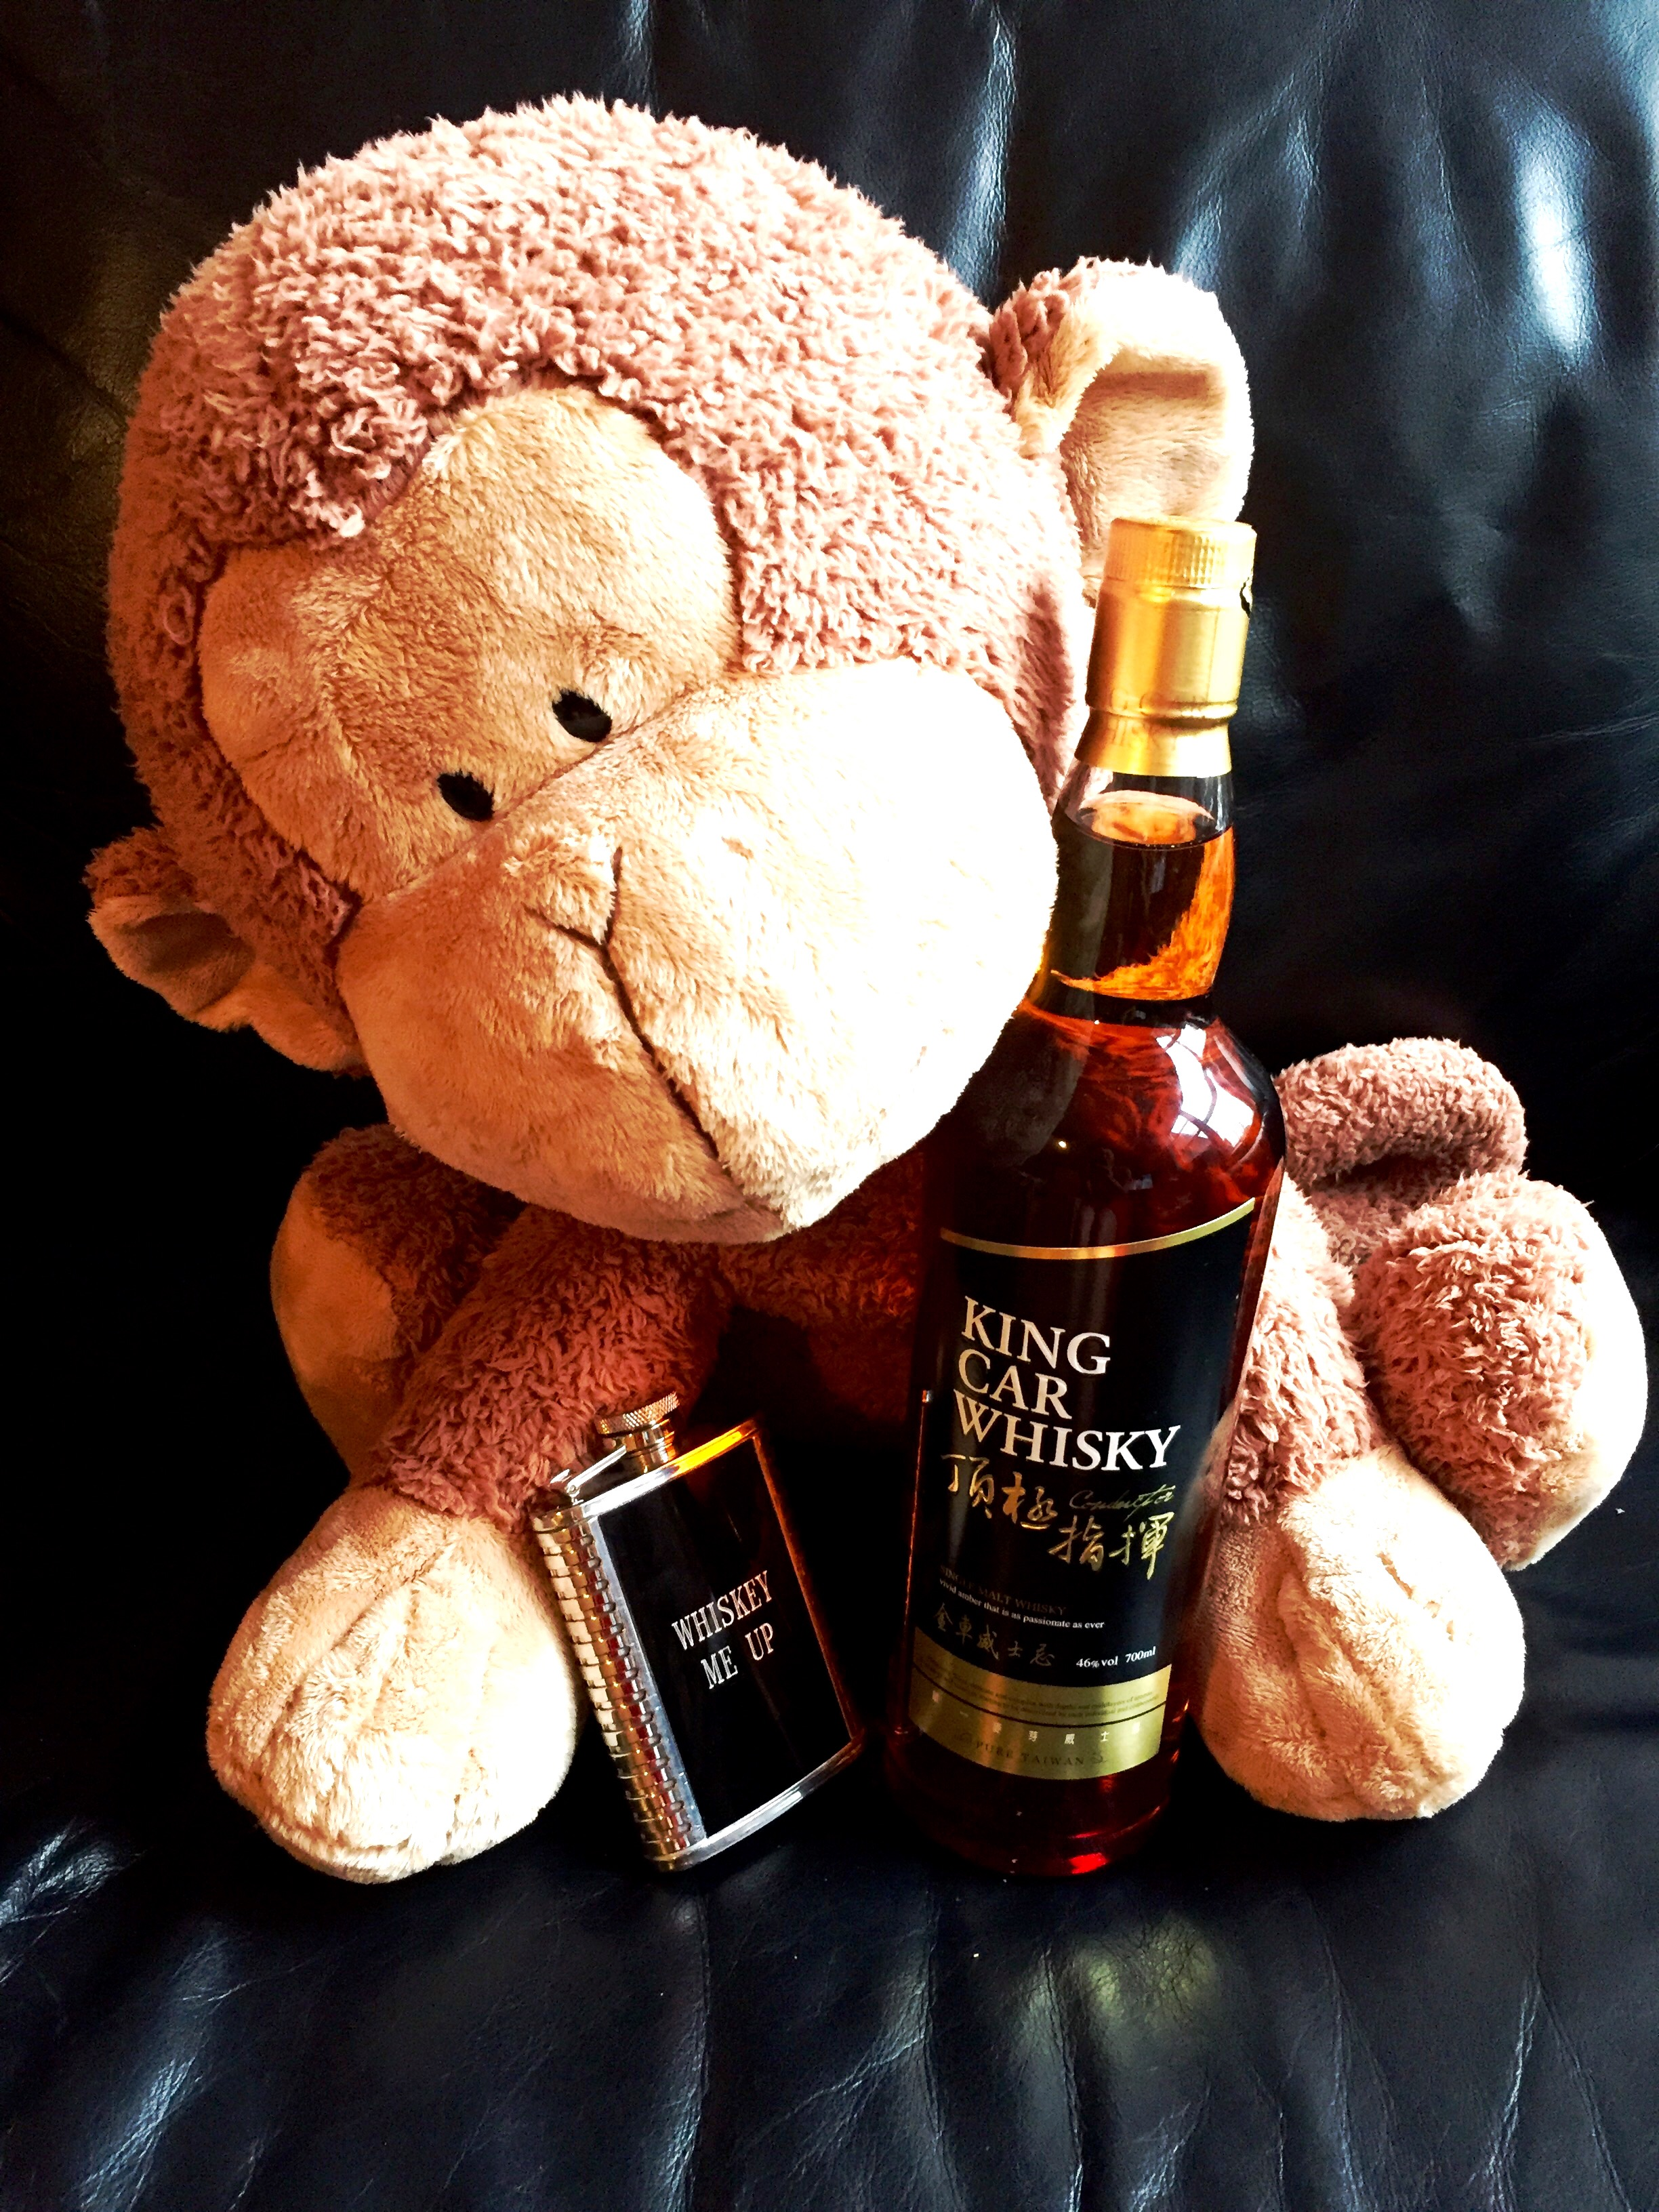 Lunar New Year 2016 - Year of the Monkey with Kavalan King Car Single Malt